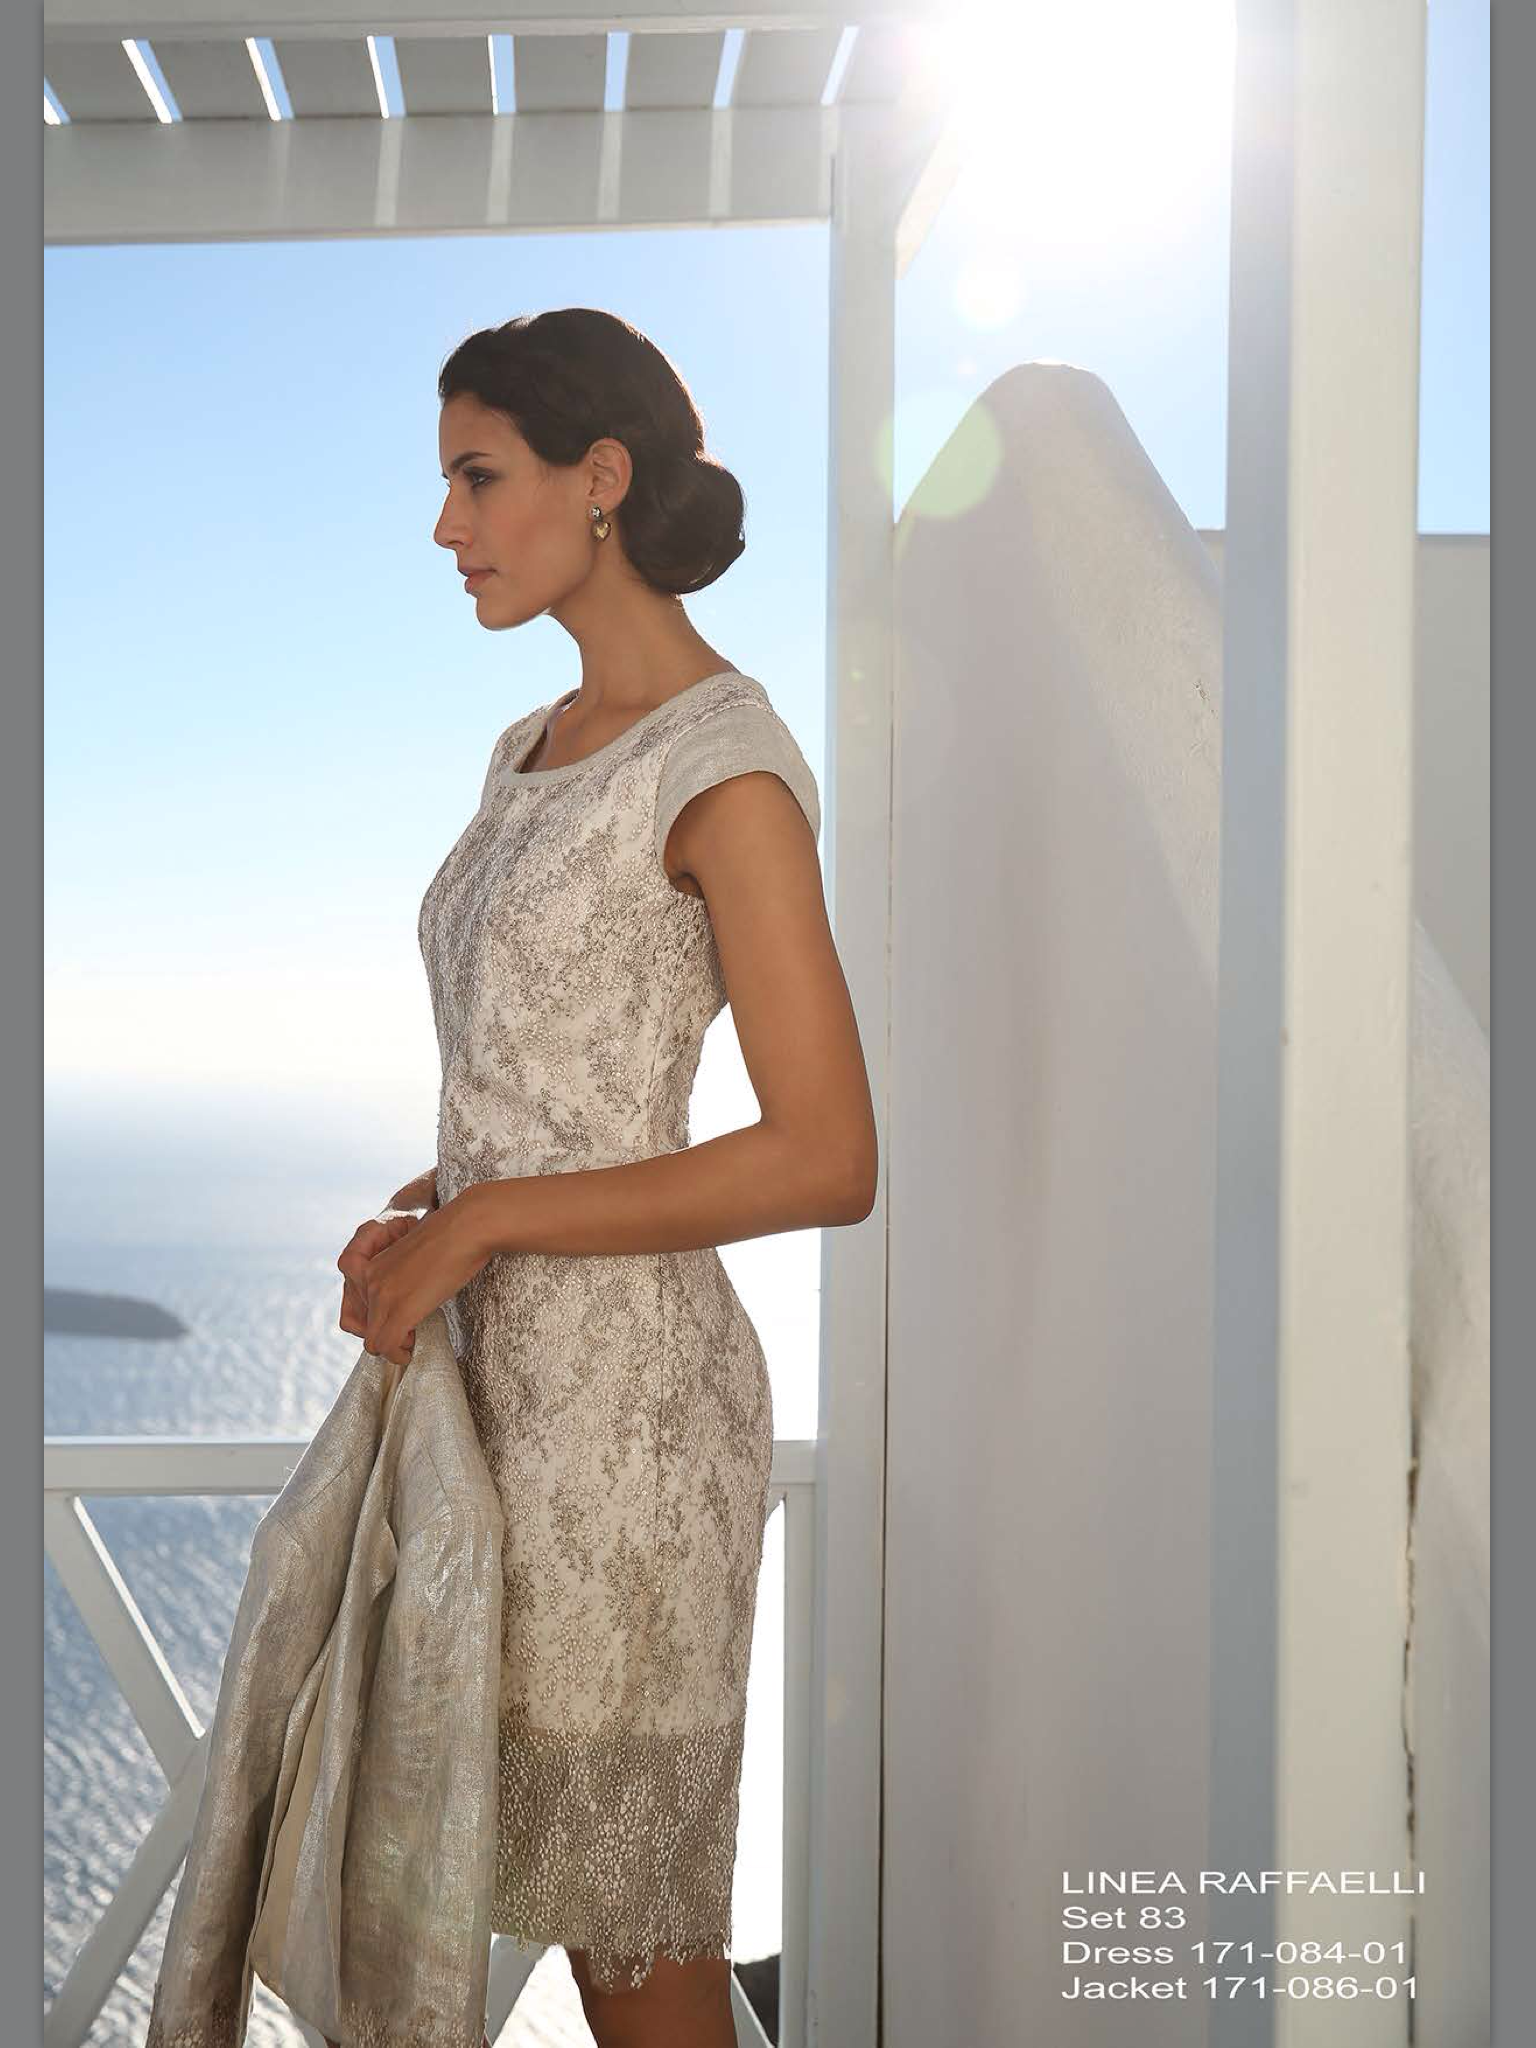 Beautiful New Linea Raffaelli Outfits Arriving Soon Available At Http Www Bridalrooms Co Uk Or Facebook